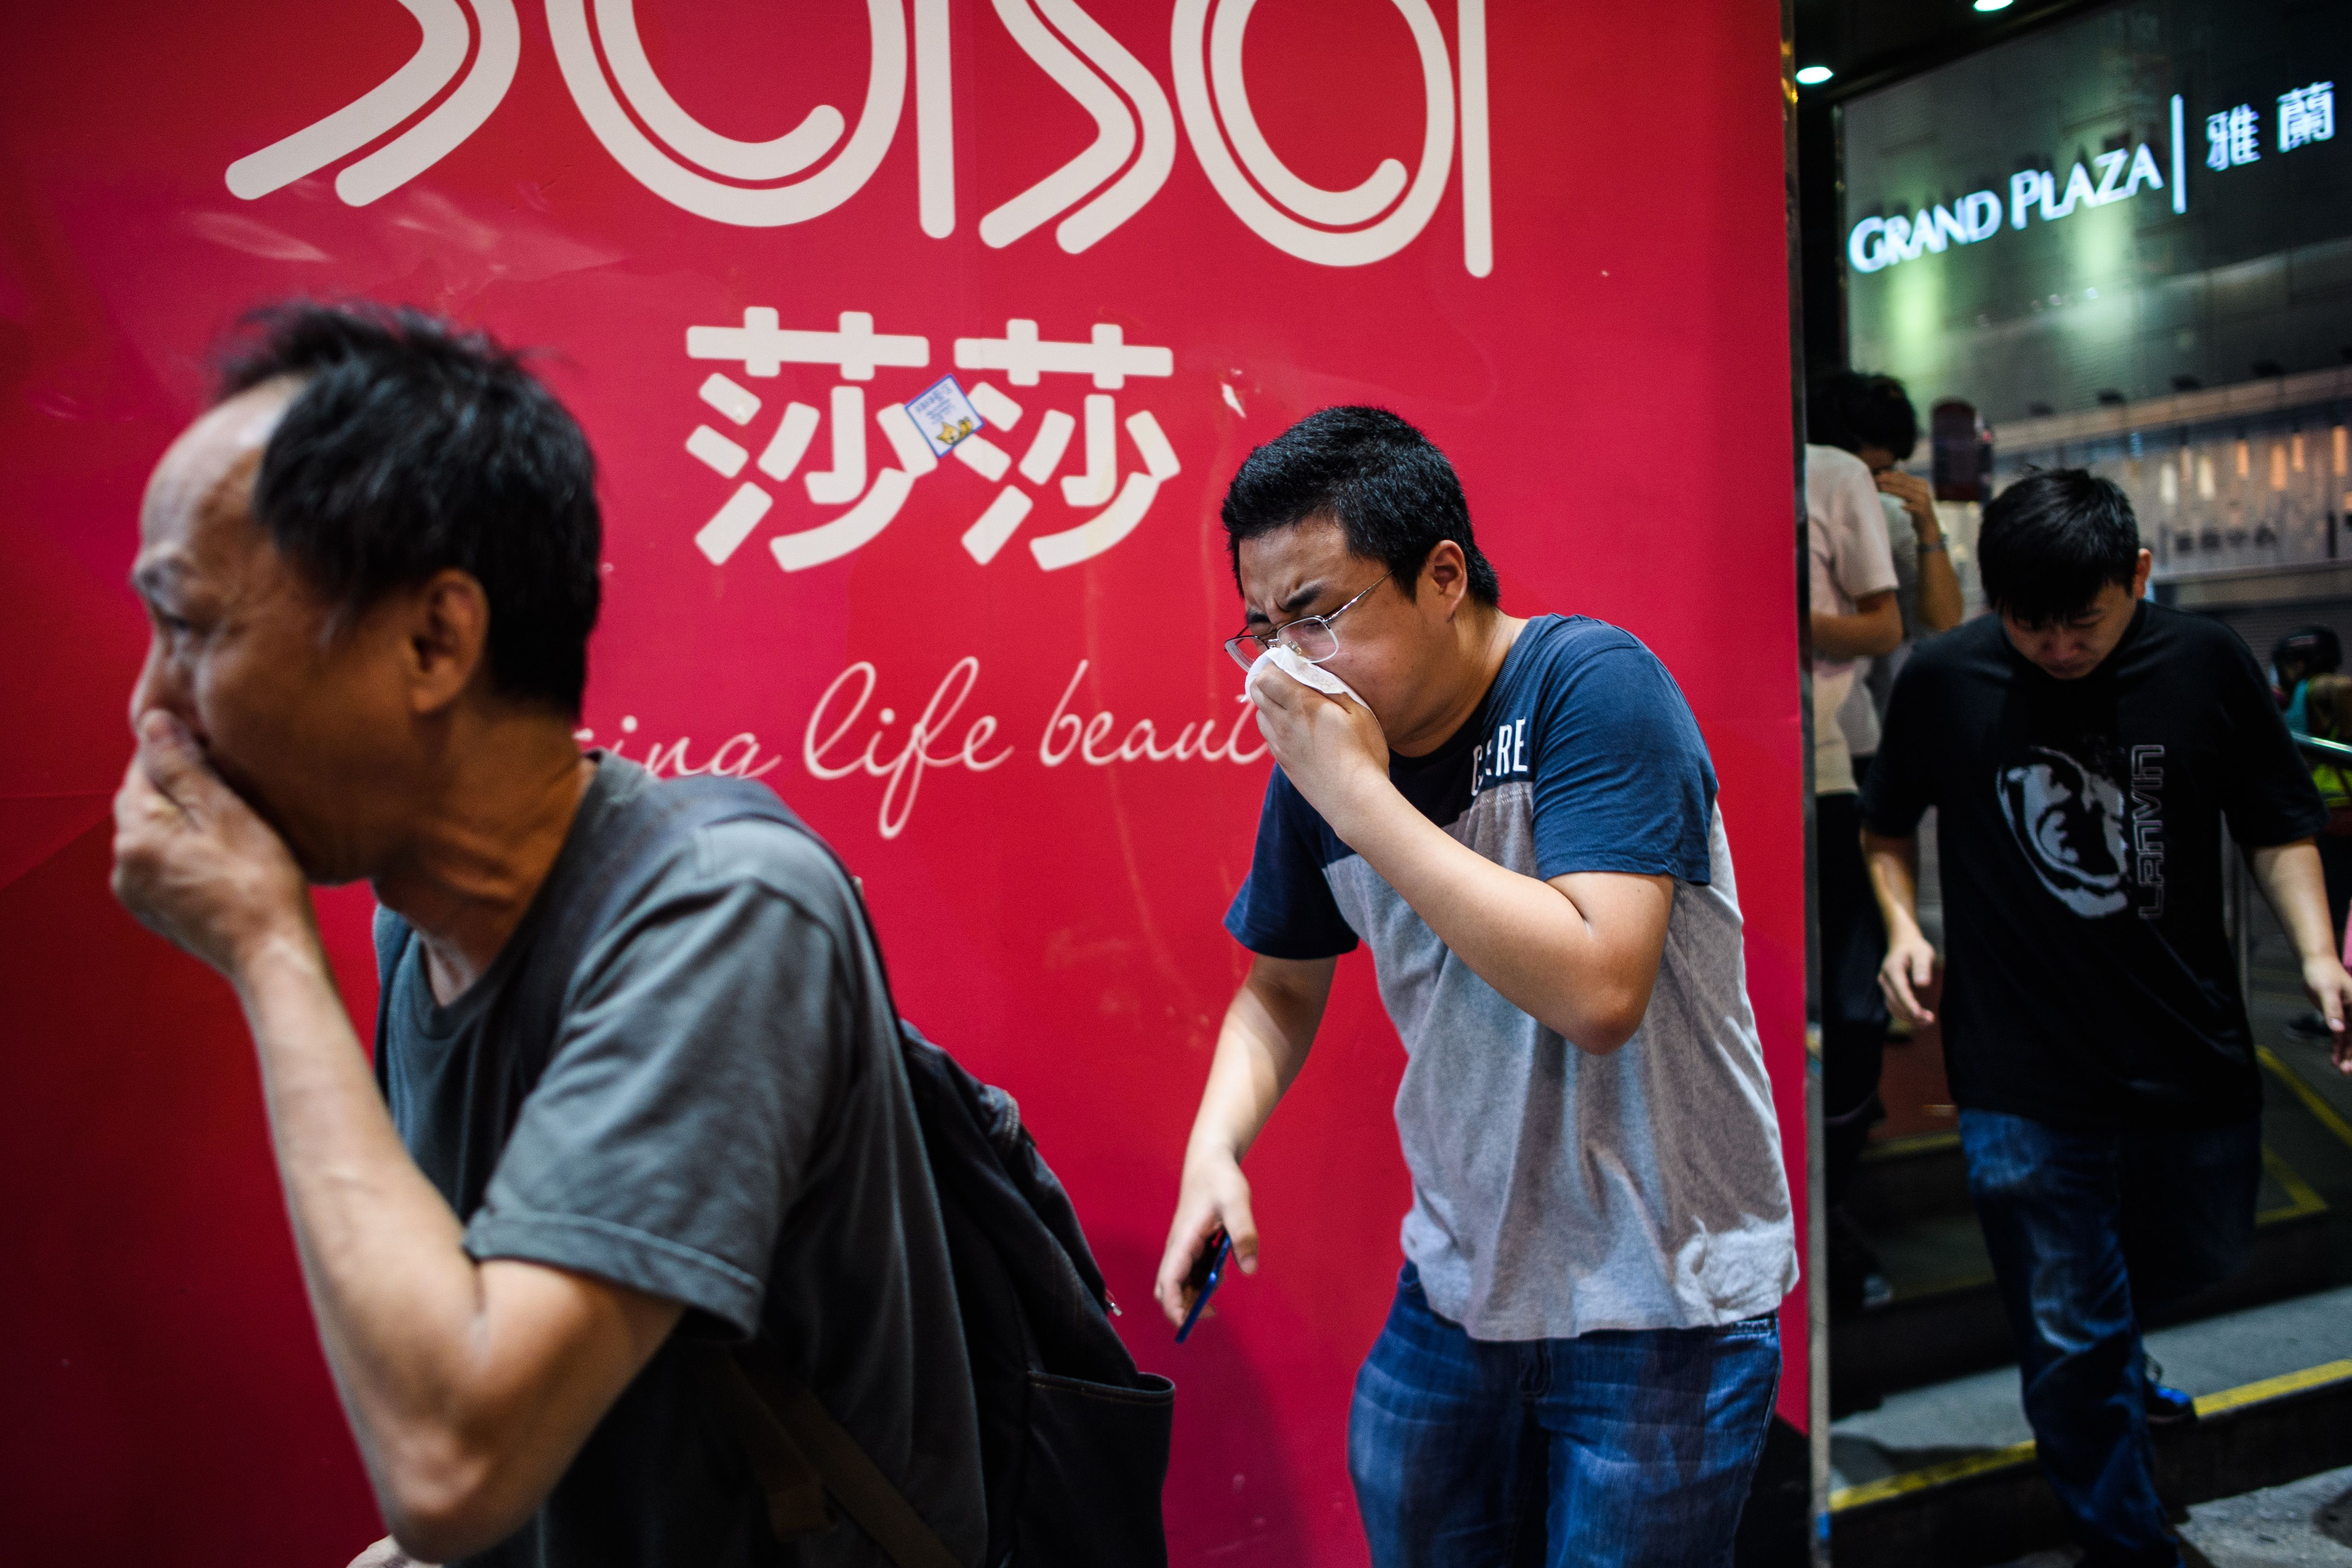 Bystanders react after police fired tear gas to disperse residents and protesters in the Mong Kok district of Kowloon in Hong Kong on October 27, 2019.